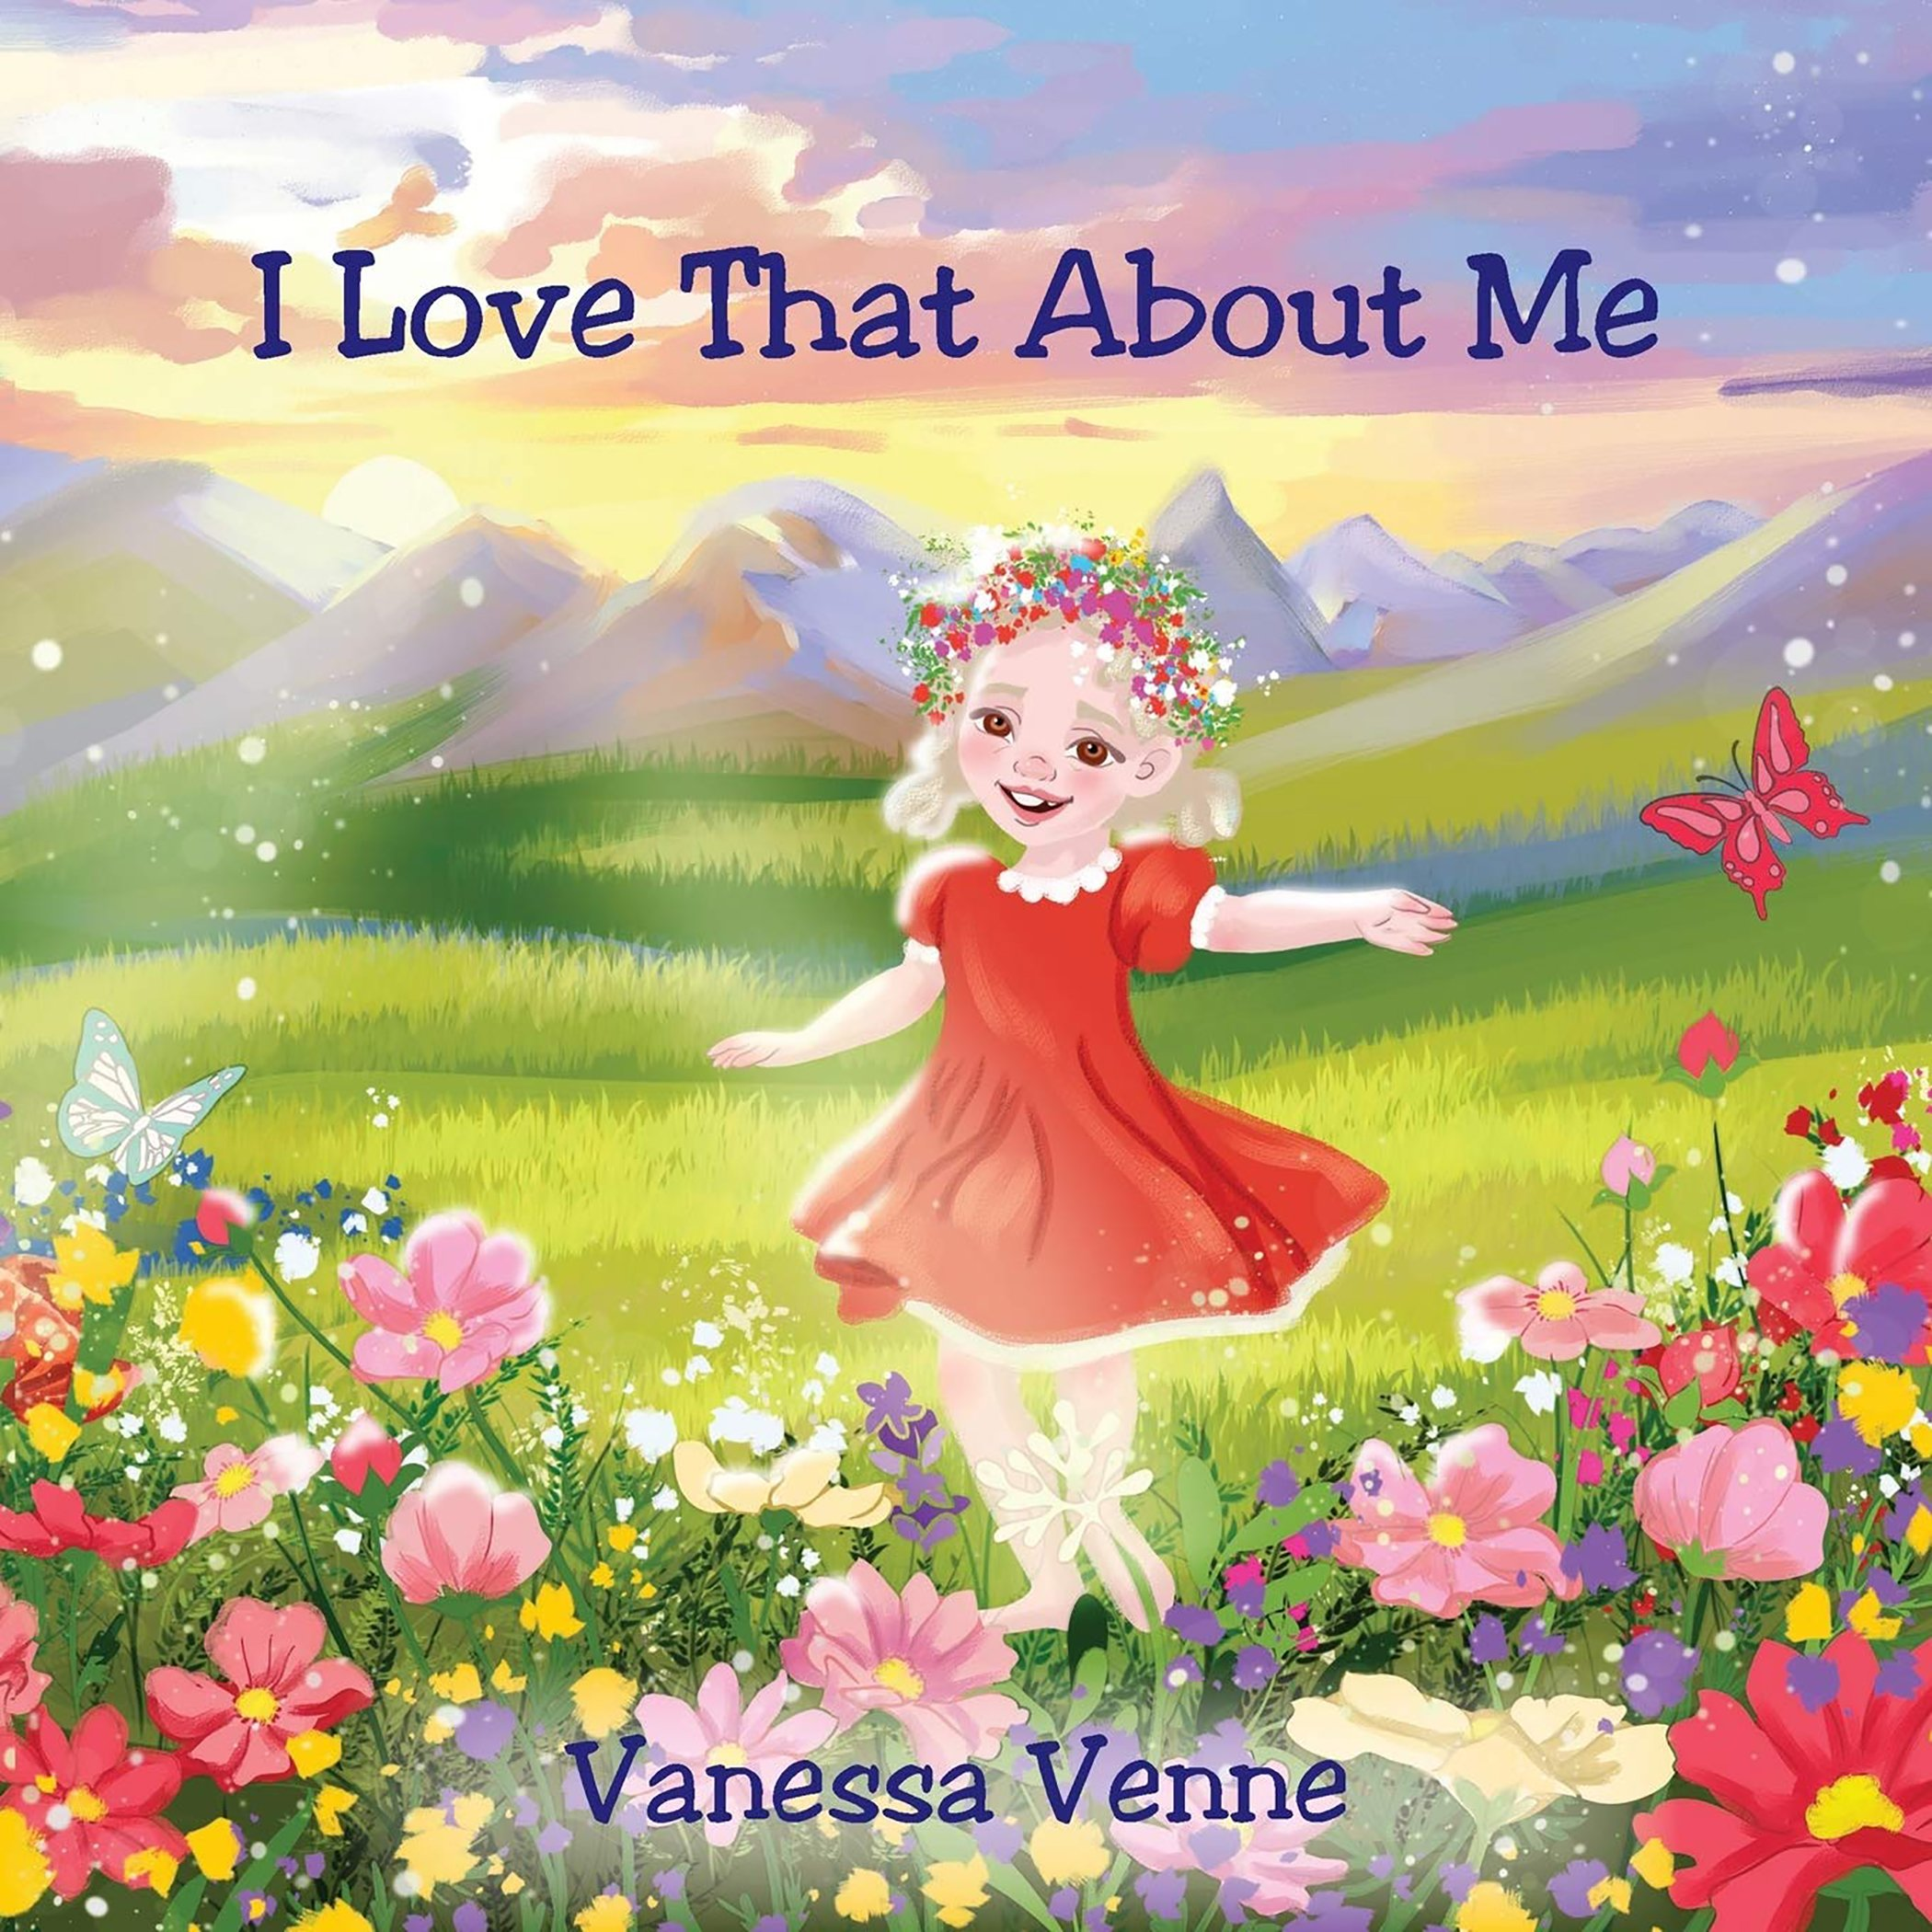 Vanessa Verne - I Love That About Me